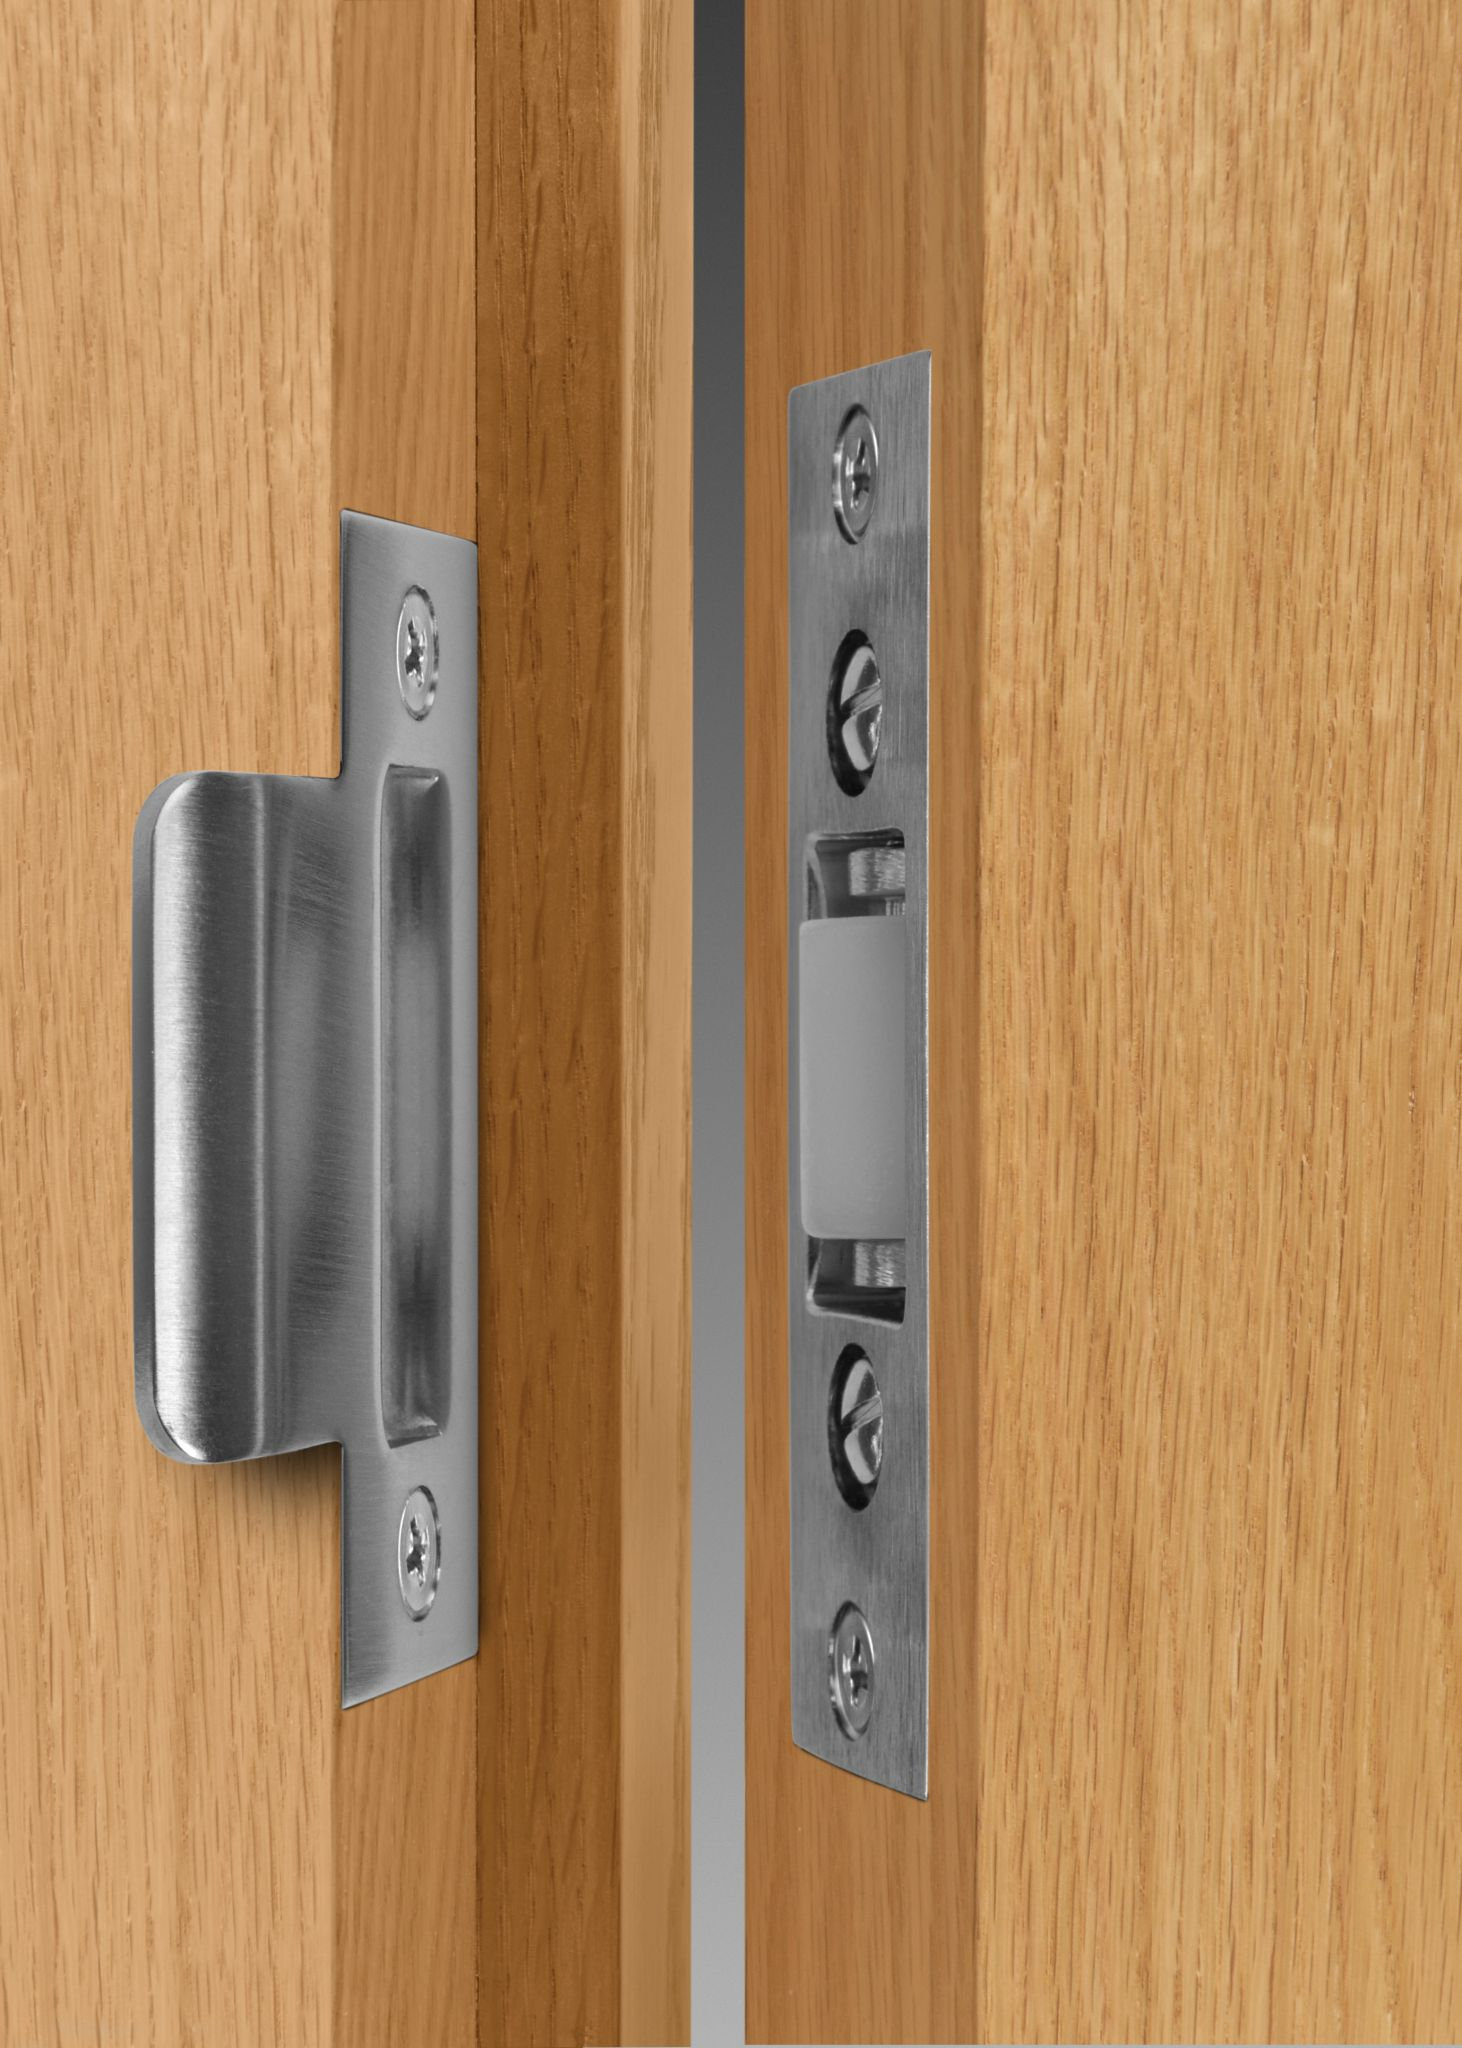 specifying doors for a healthier environment